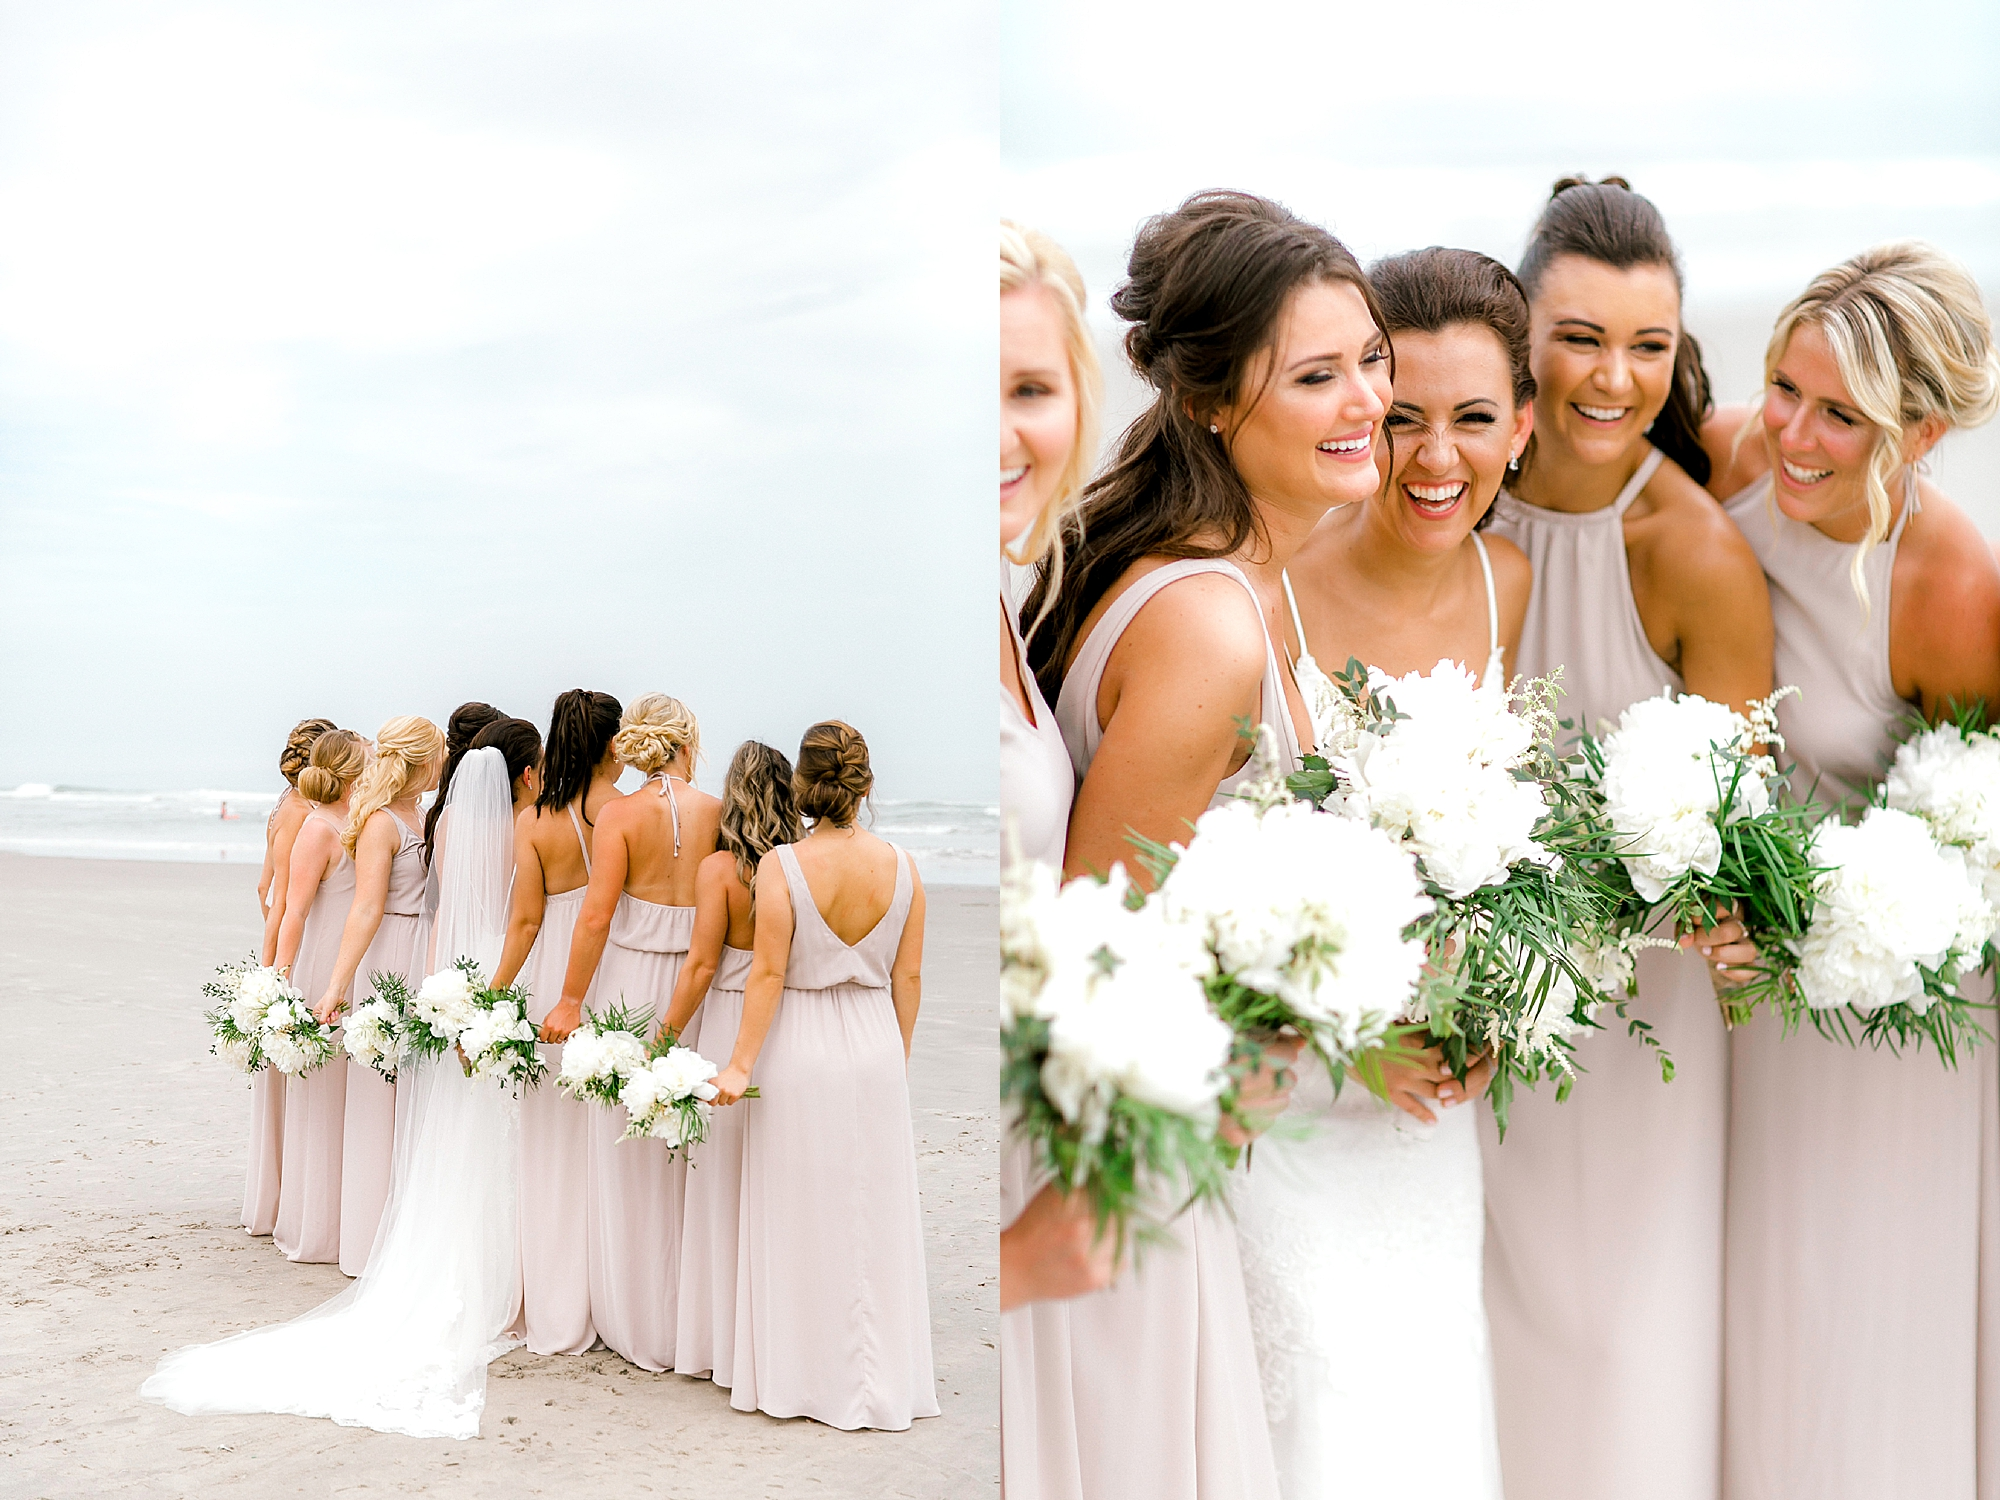 Candid and Stylish South Jersey Wedding Photography by Magdalena Studios 0032